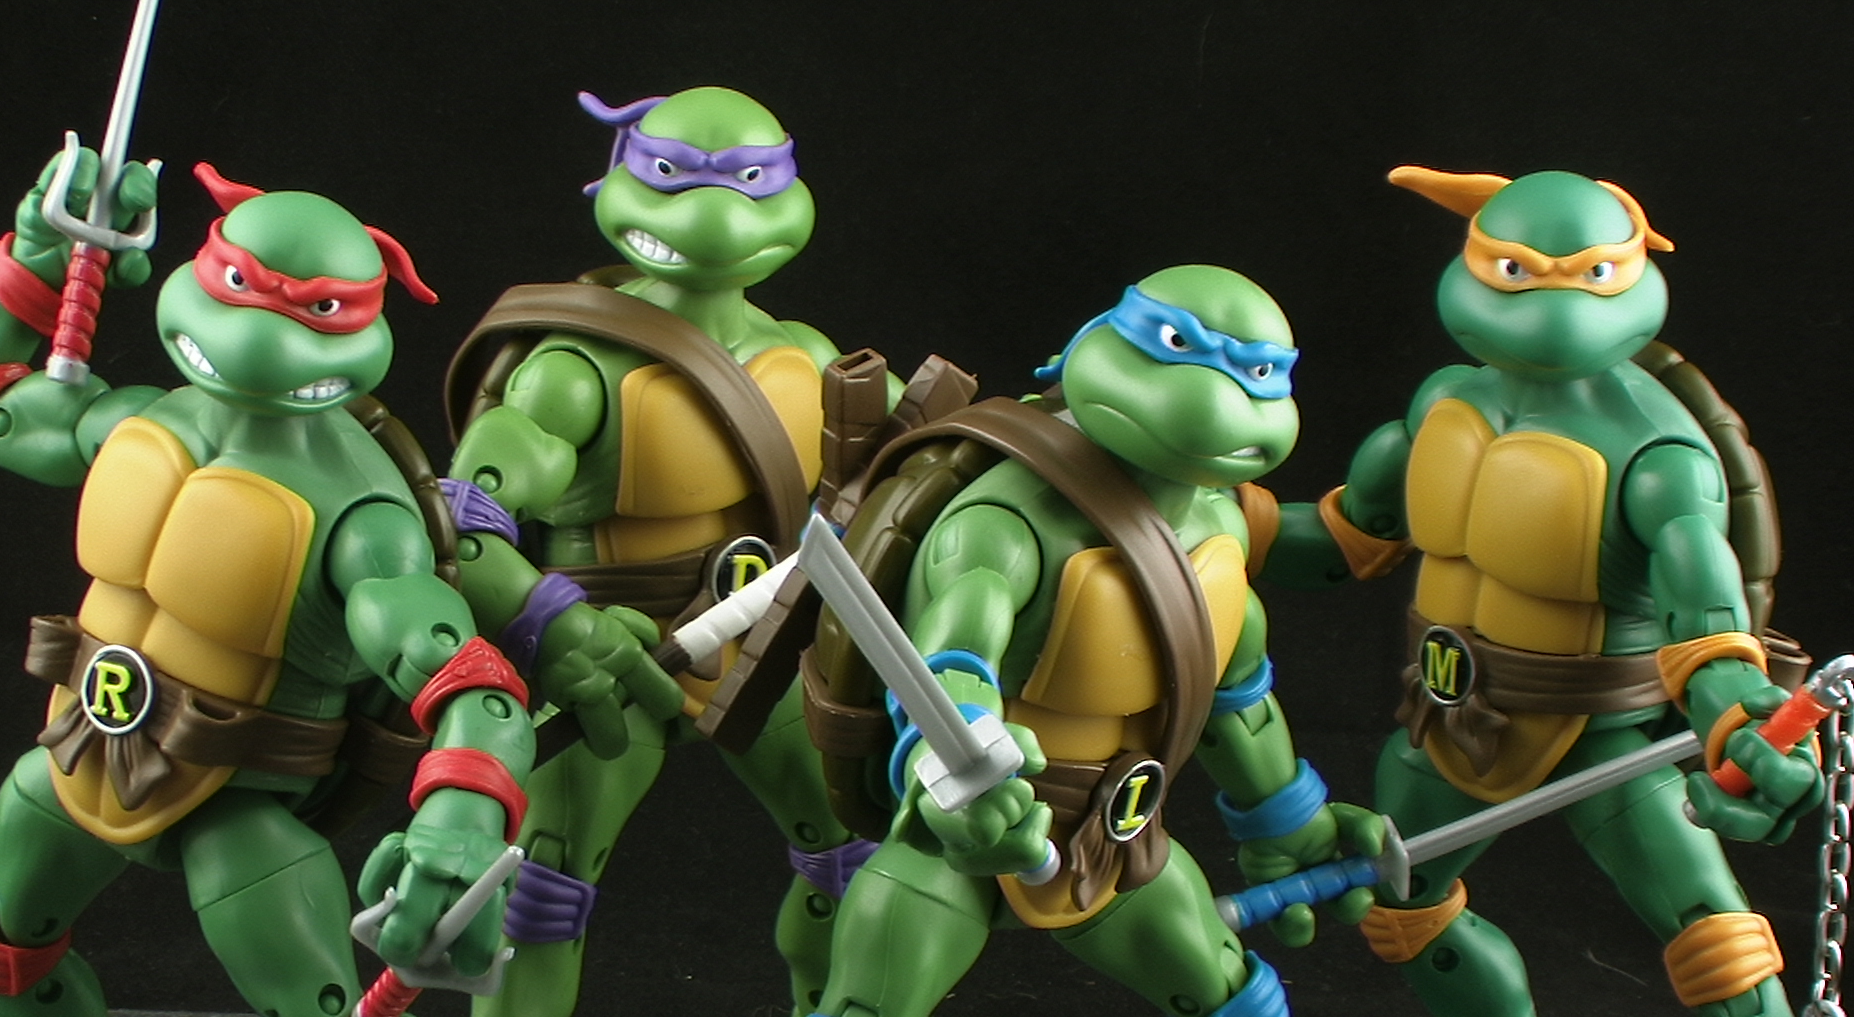 Teenage Mutant Ninja Turtles Playmates Toys Inc. (1988–1996)